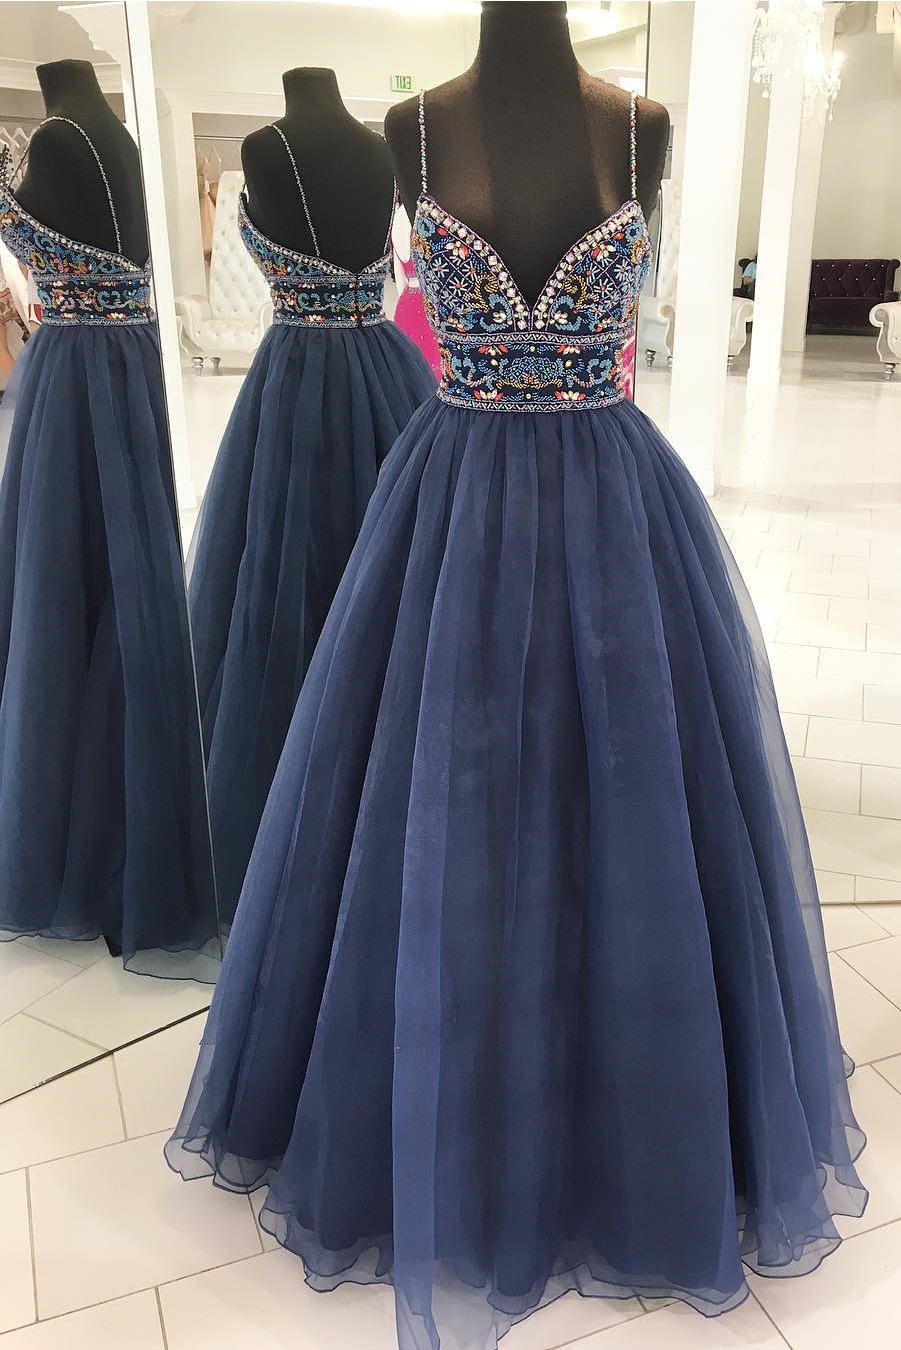 Adorable Teens Prom Dress Colored Graduation Party Prom Dresses Colored Graduation Party Prom Dresses Forteens Prom Dress Teens Short Dresses wedding dress Dresses For Teens